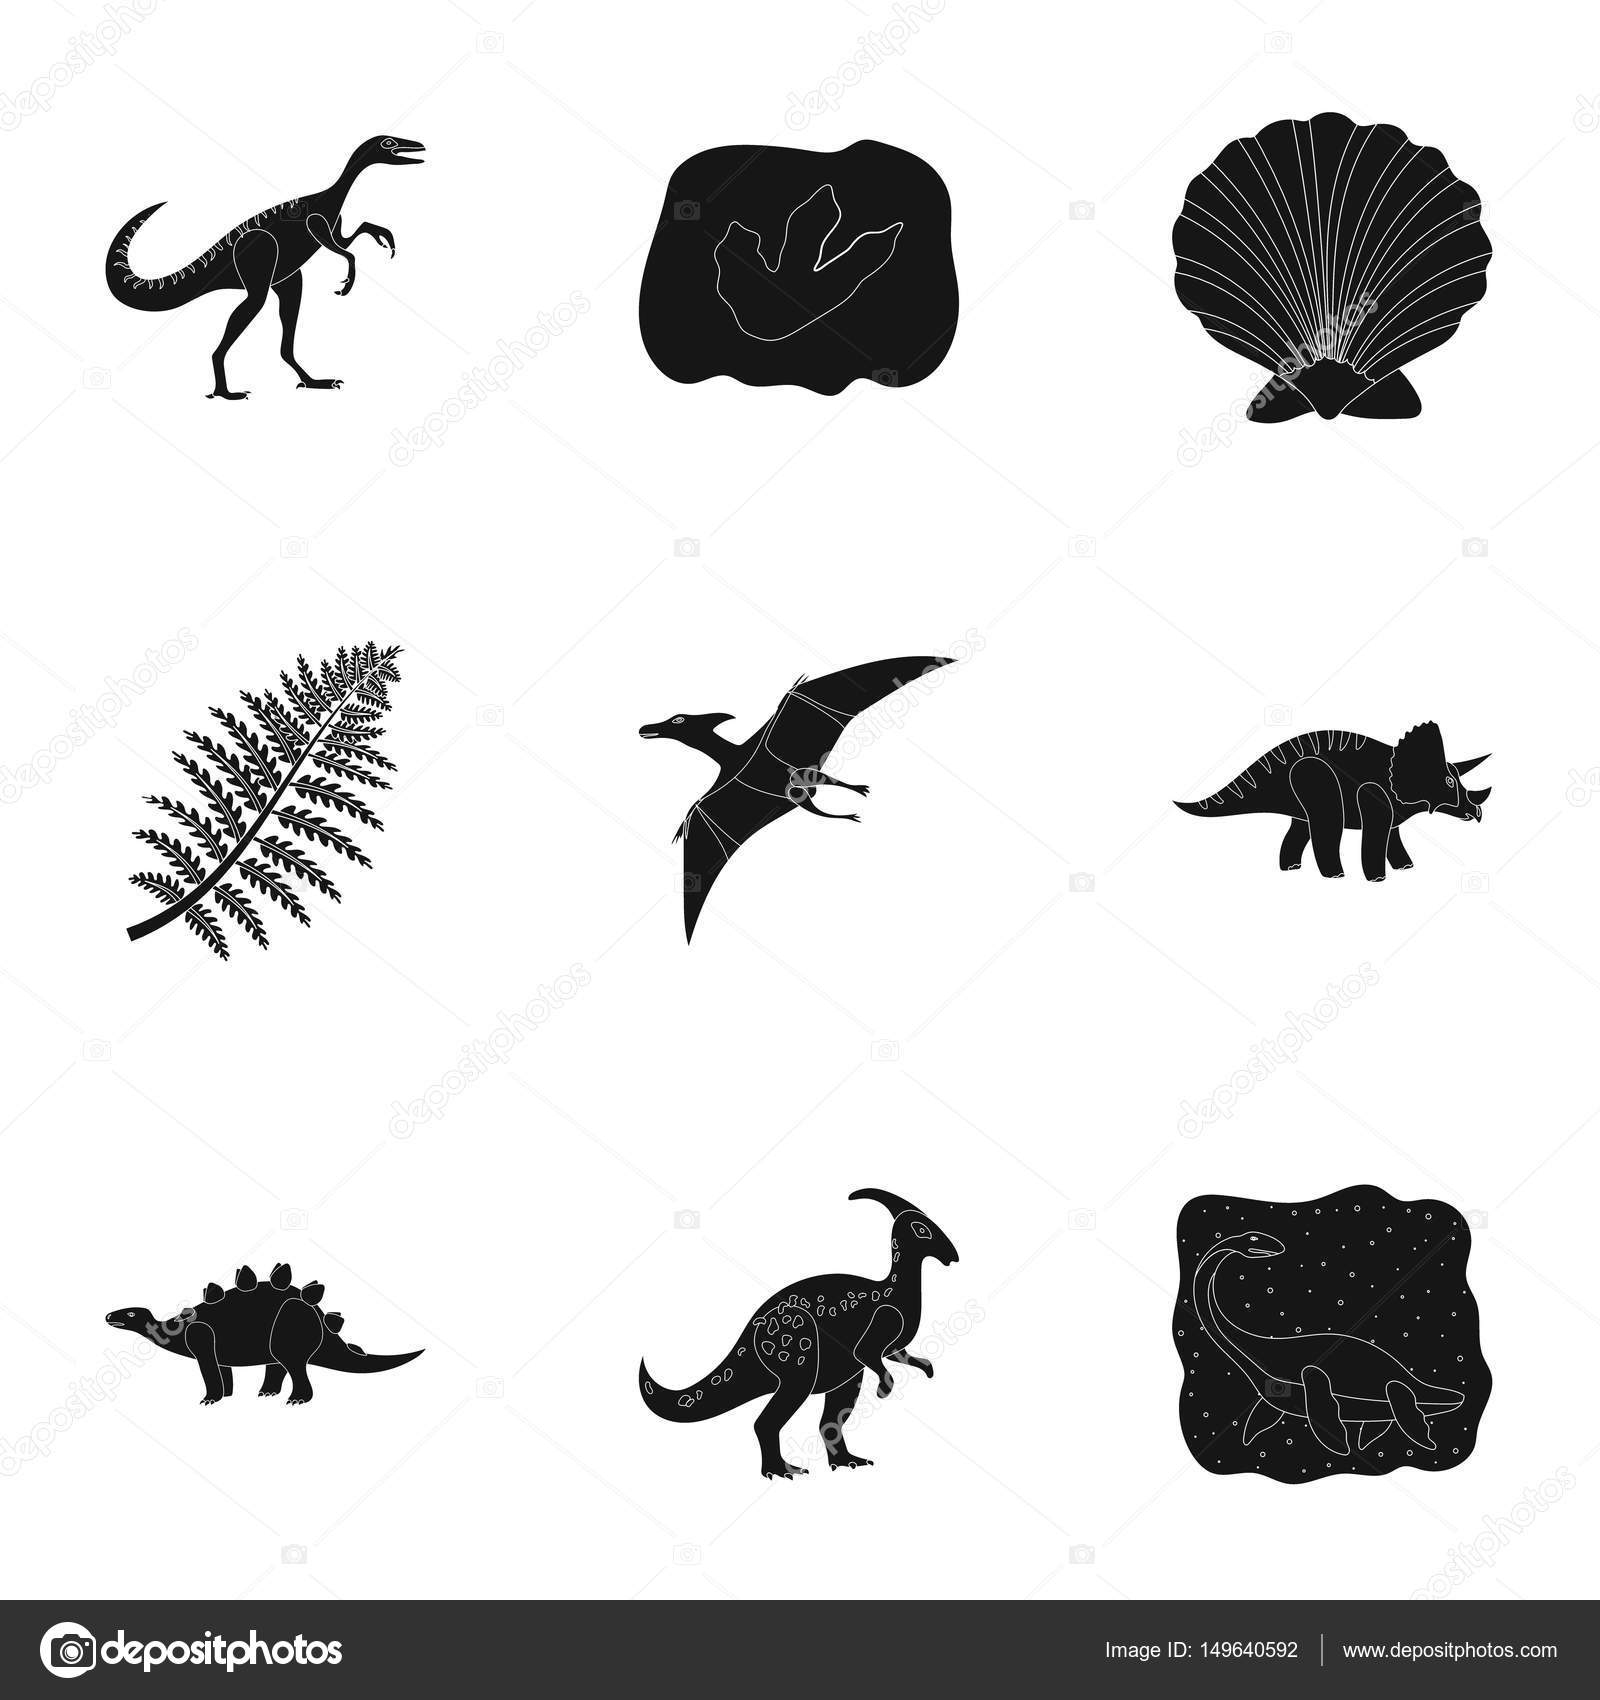 Image of: Mammals Ancient Extinct Animals And Their Tracks And Remains Dinosaurs Tyrannosaurs Pnictosaursdinisaurs And Prehistorical Icon In Set Collection On Black Style Depositphotos Ancient Extinct Animals And Their Tracks And Remains Dinosaurs